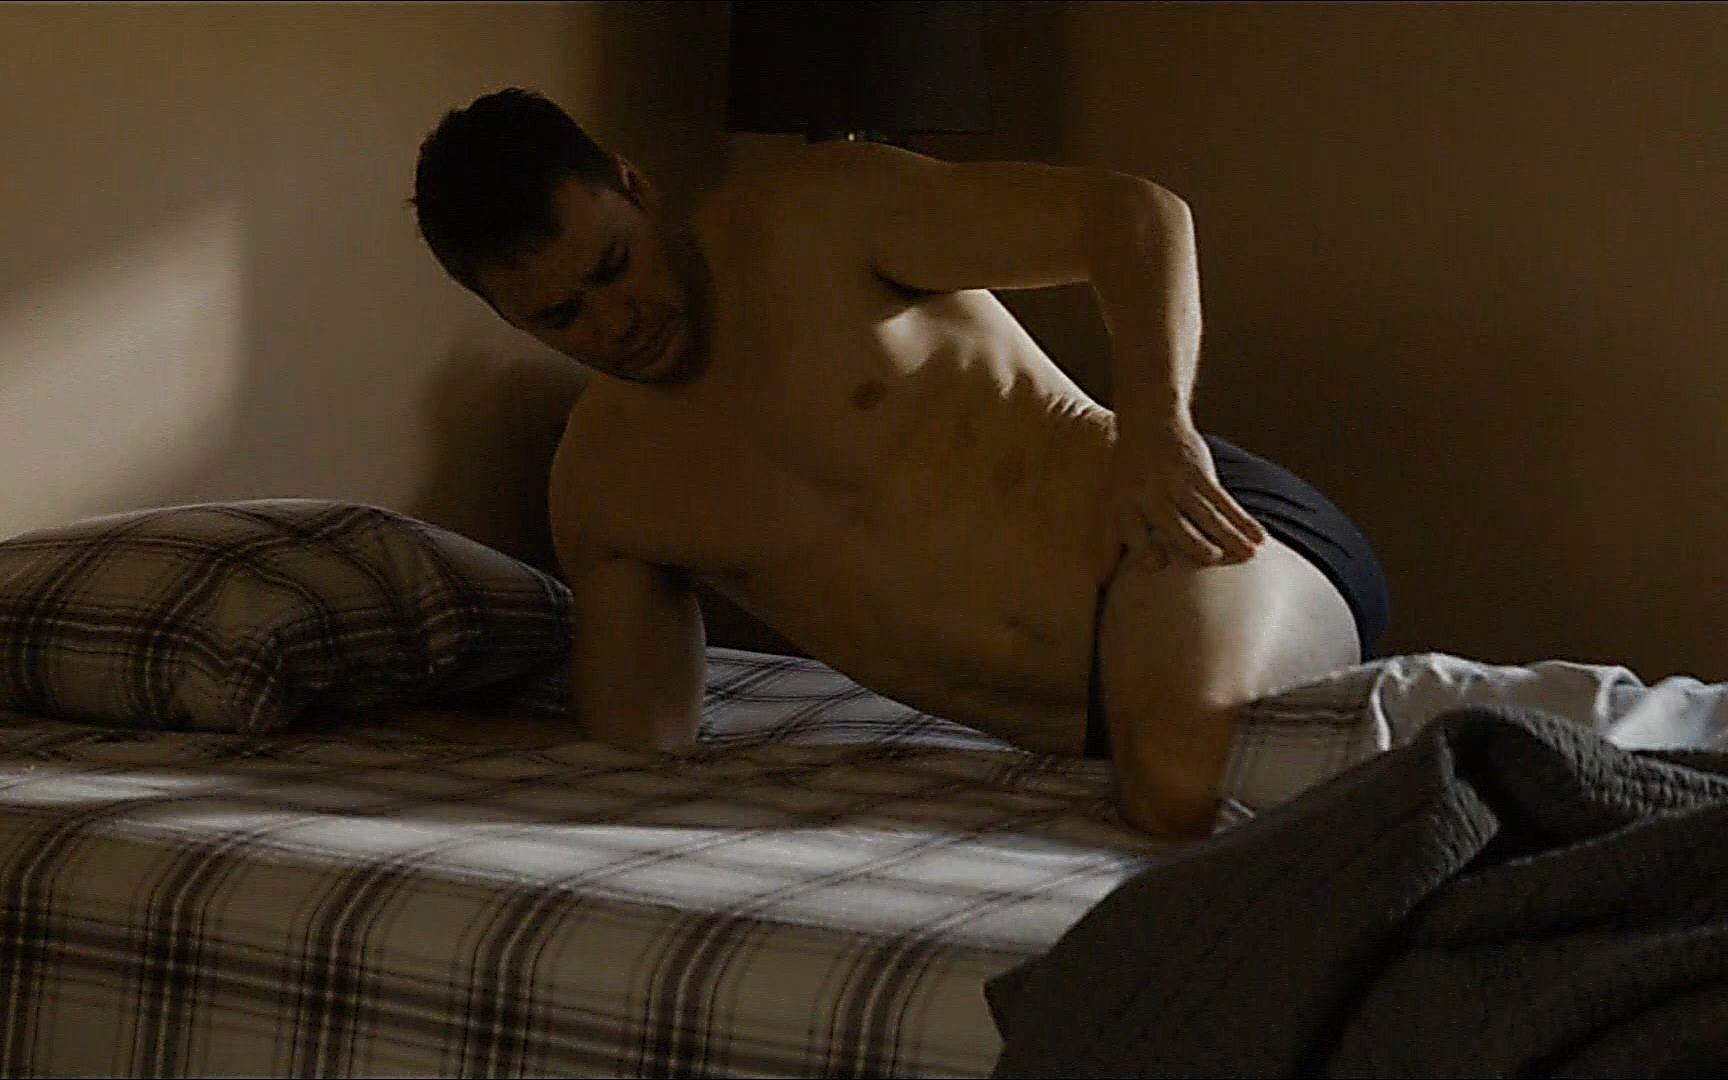 Taylor Kitsch sexy shirtless scene July 12, 2015, 11pm